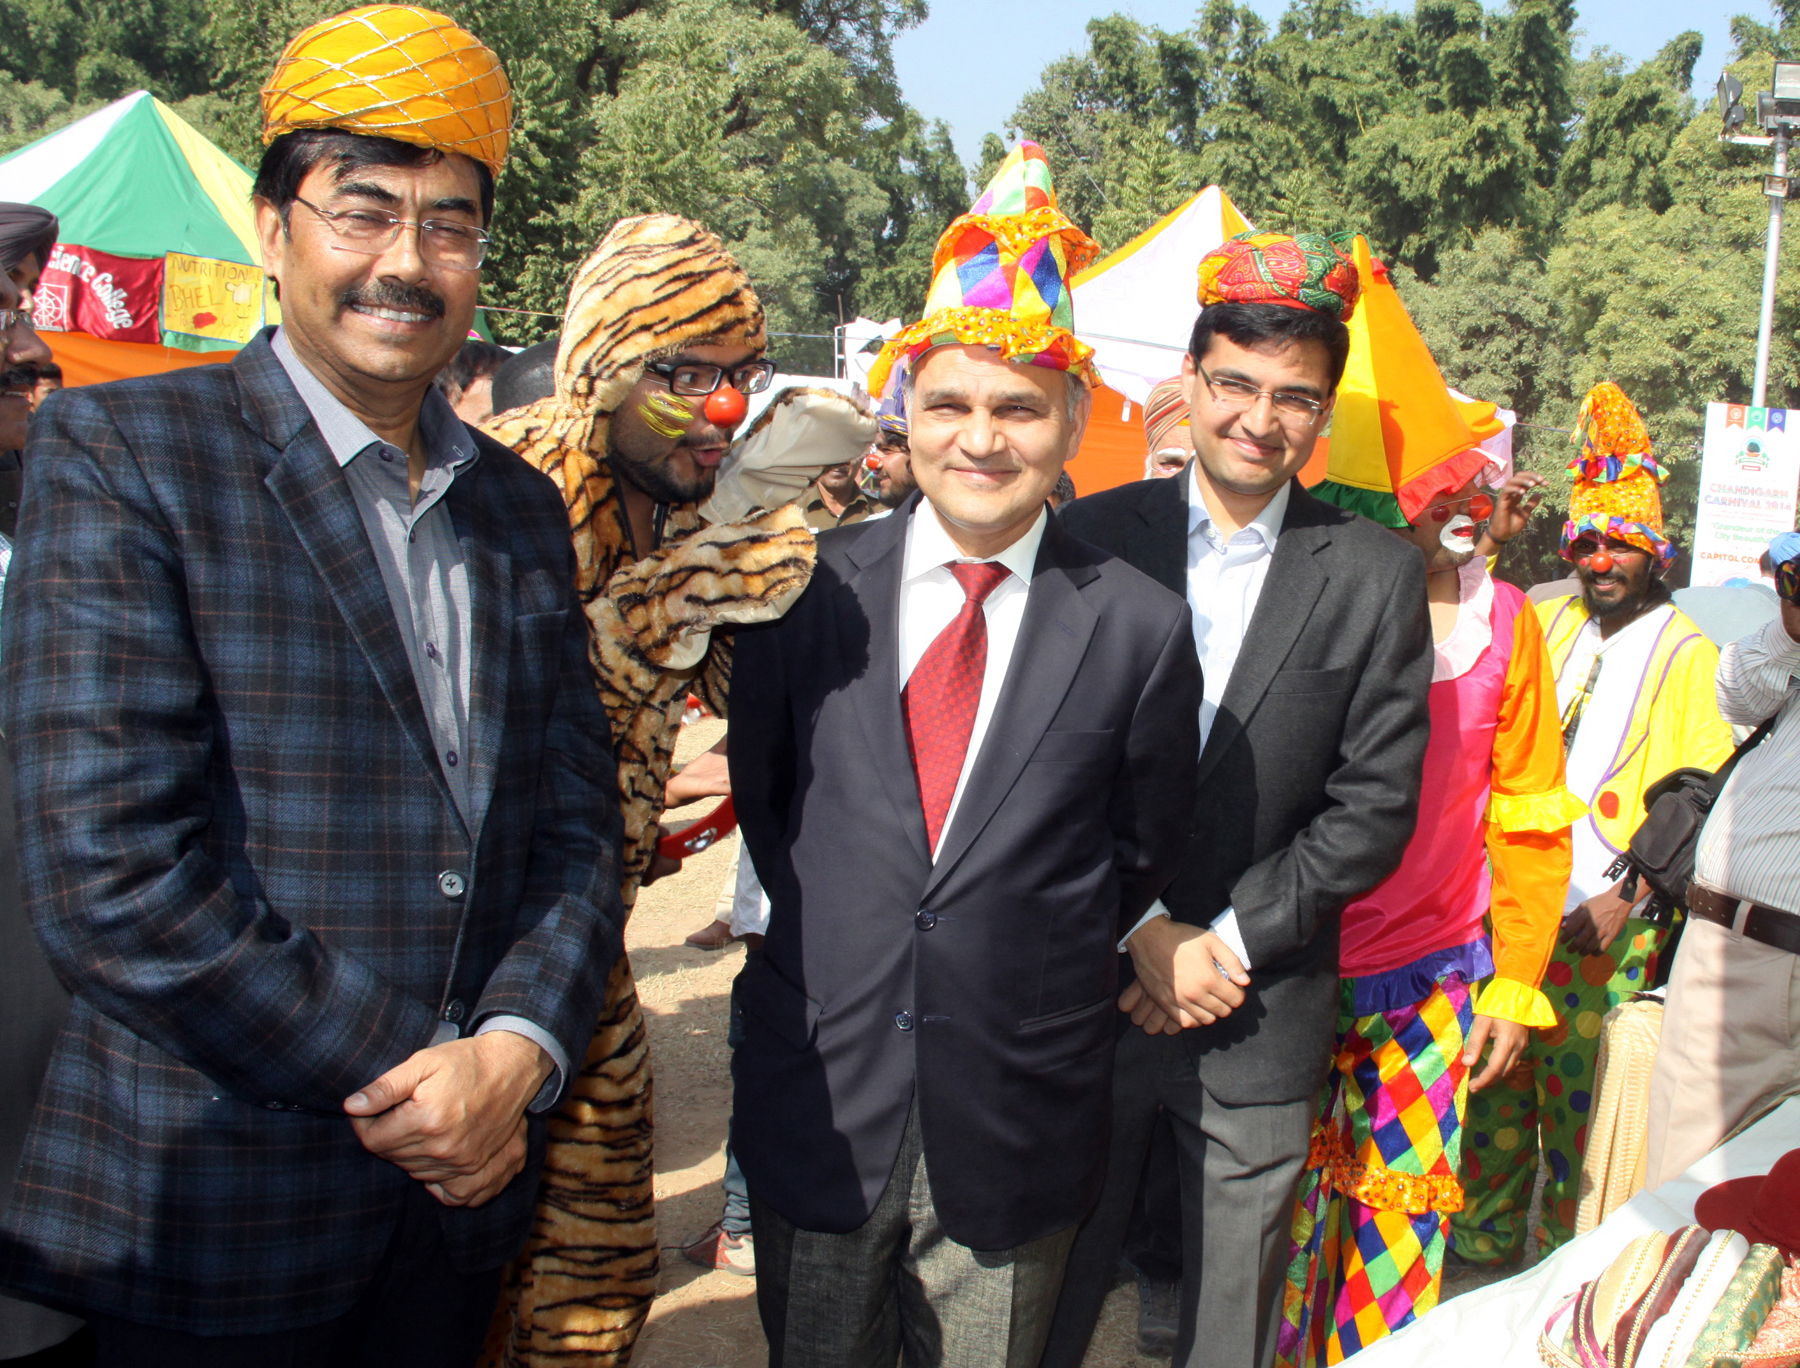 The Adviser to the Administrator, UT, Chandigarh, Mr. K.K. Sharma, UT Home Secretary, Mr. Anil Kumar alongwith officers taking a round of the Chandigarh Carnival-2014 at Leisure Valley, Sector-10, Chandigarh on Friday, November 28, 2014.